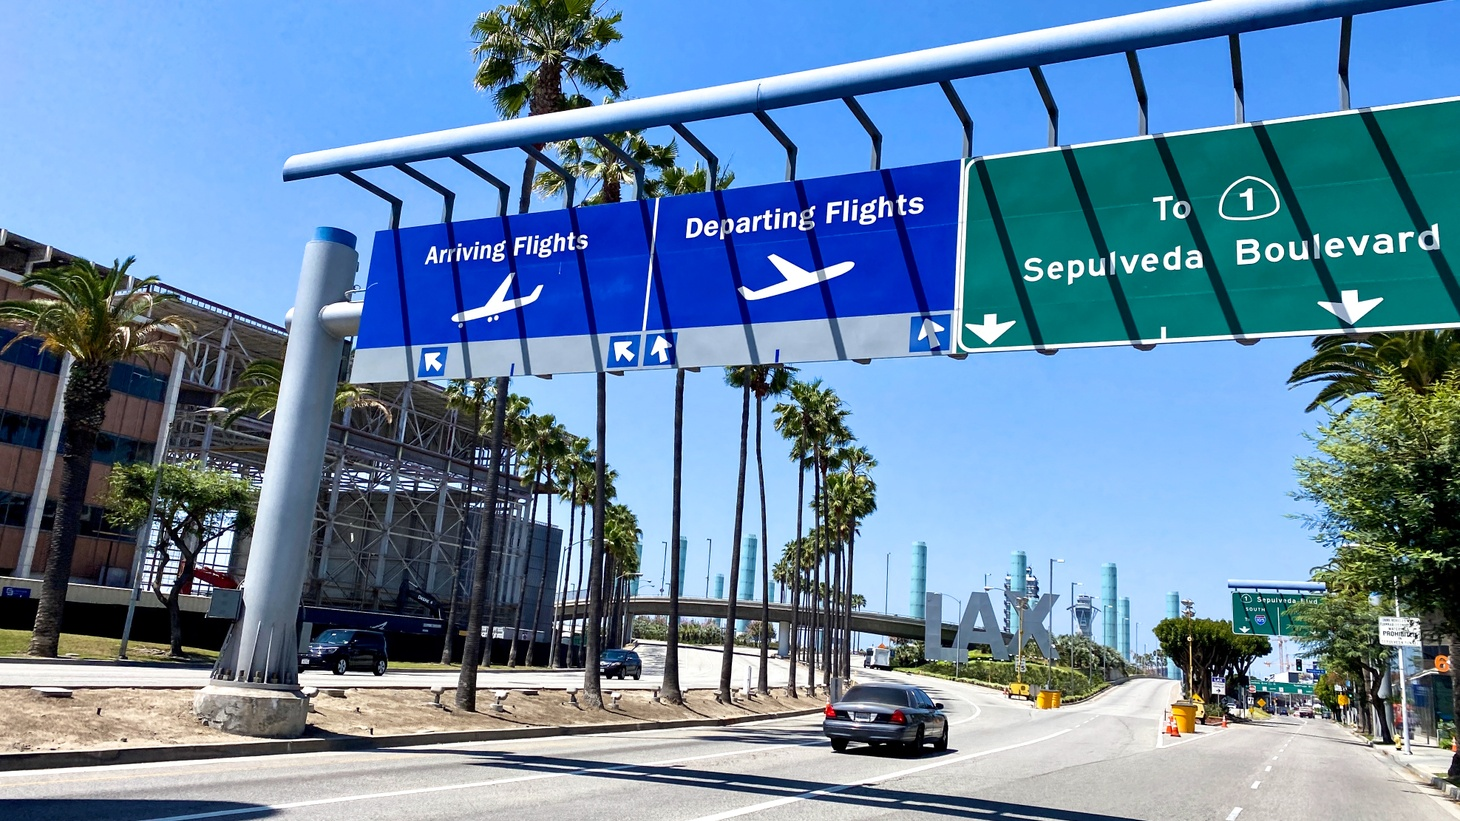 Former LA Times travel editor Catharine Hamm says she hasn't heard of anyone contracting COVID-19 on a flight, but she's not sure whether officials are checking that. She says the good news is that aircrafts have high quality circulation systems.